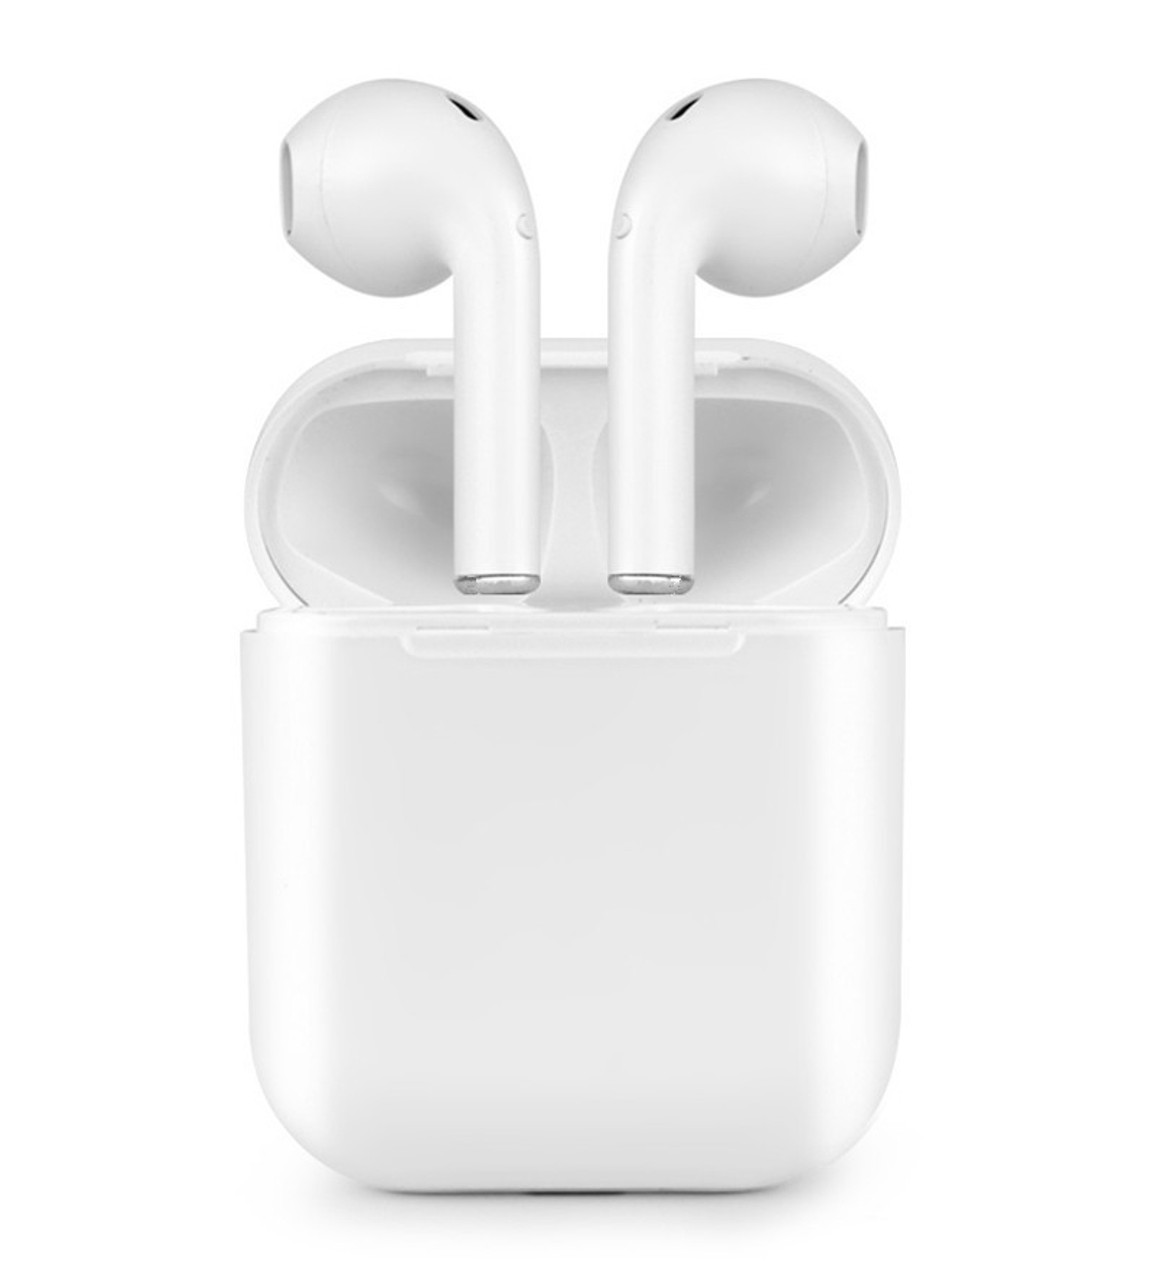 d616b1845d4 Sound & Sonic SS-WBHC-WT Wireless Earbuds Bluetooth v4.2 HD Stereo Sound  (White with Charging Case) - Deal Parade